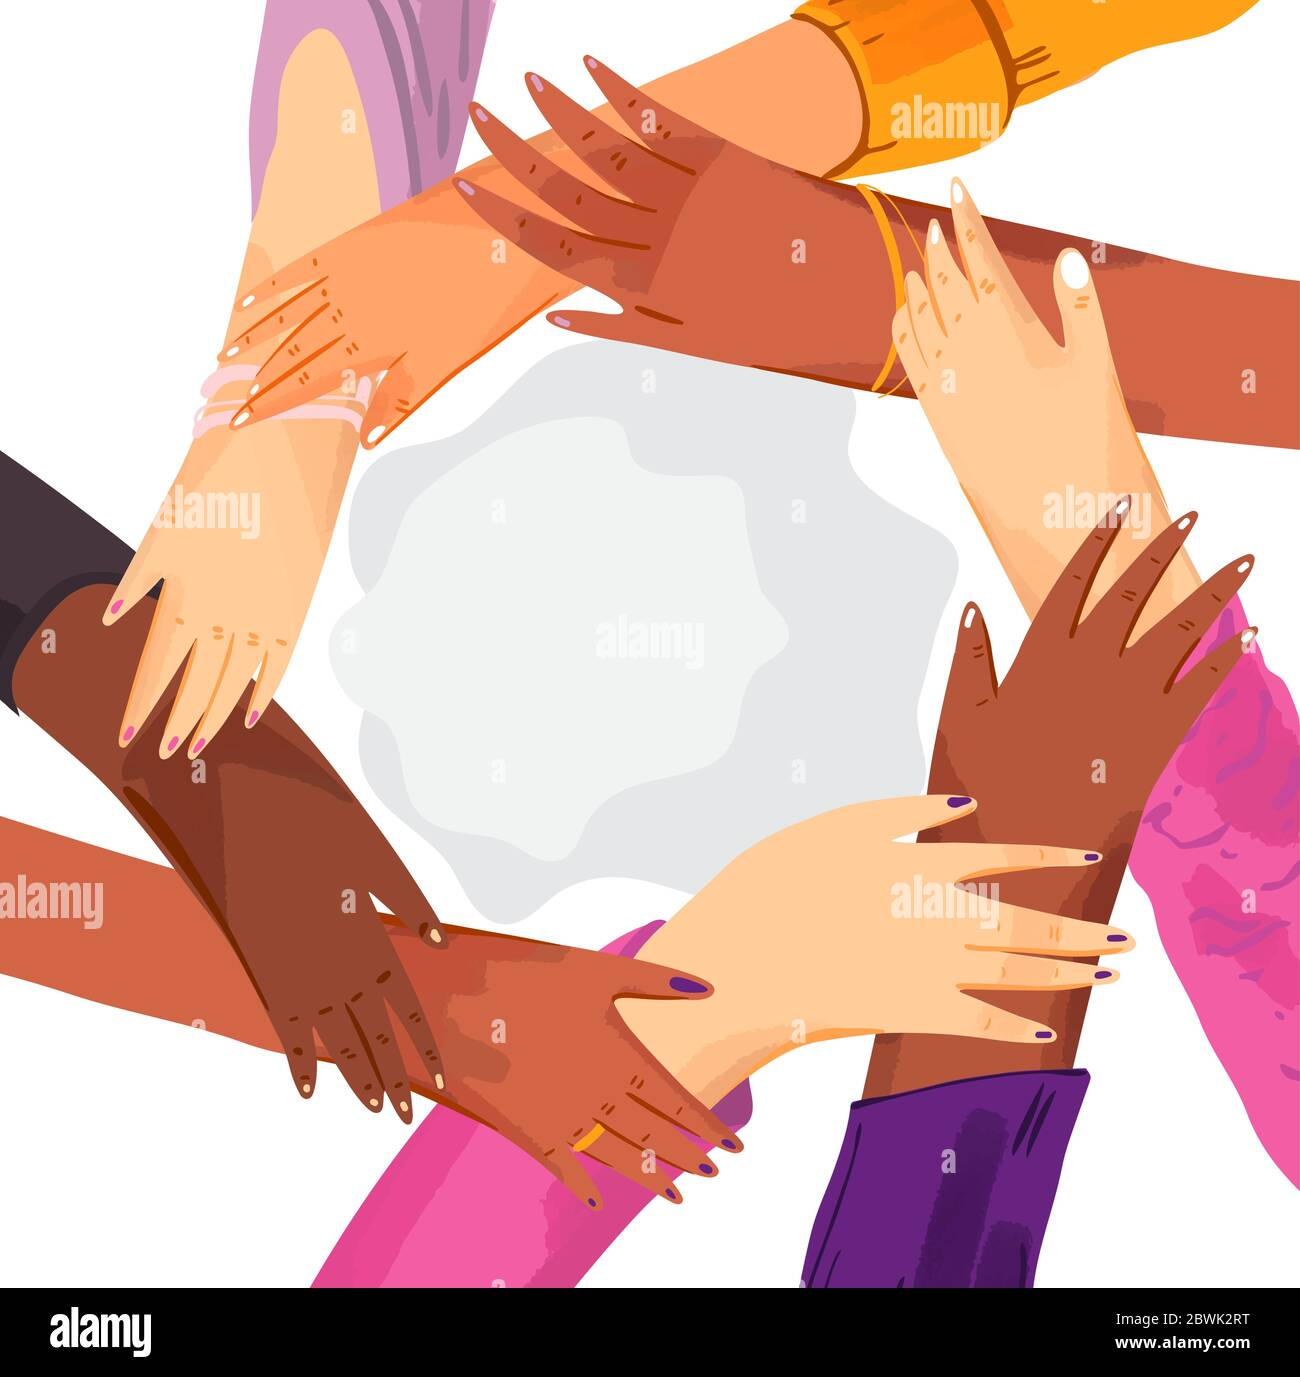 Hands of diverse group of women putting together in circle. Concept of sisterhood, girl power, feminist community or movement, friendship, support and Stock Vector